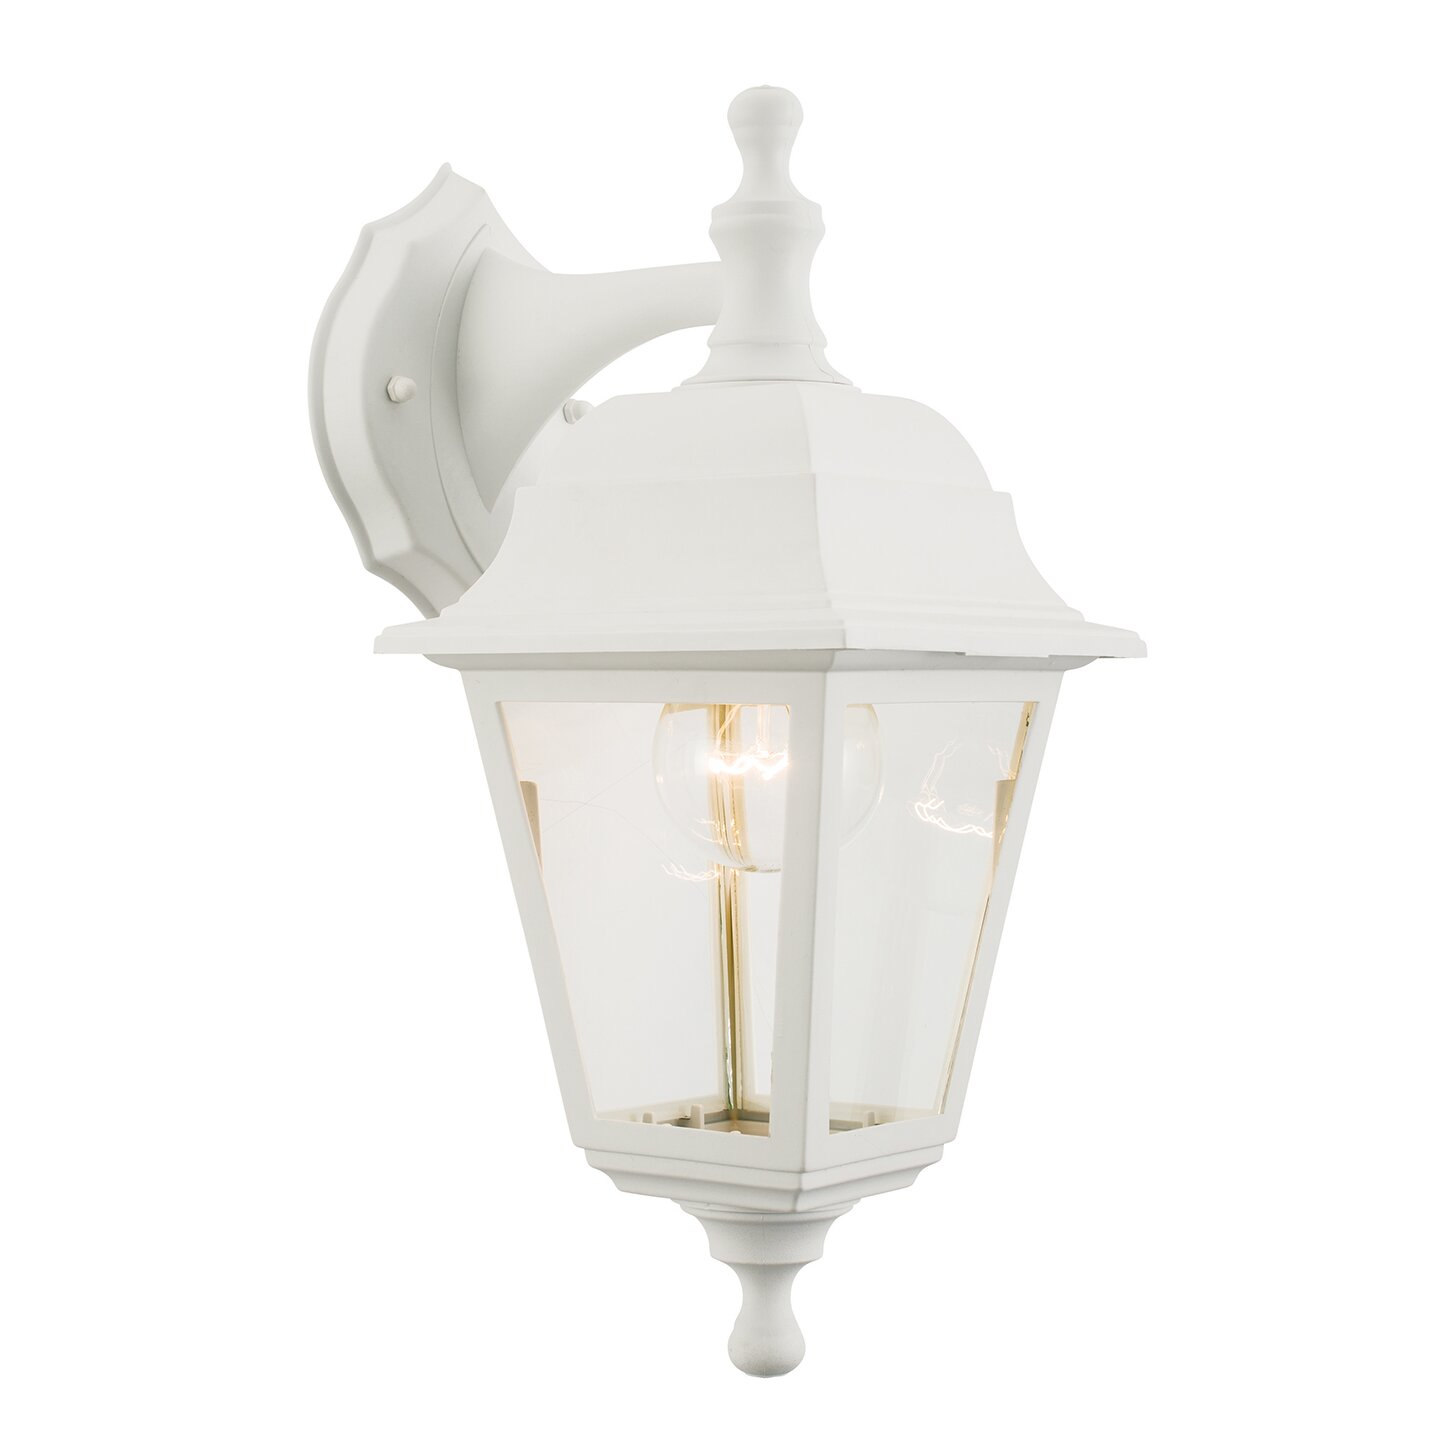 Pimlico Wall Lamp In Glass : Endon Lighting Pimlico 1 Light Outdoor Wall Lantern Wayfair UK